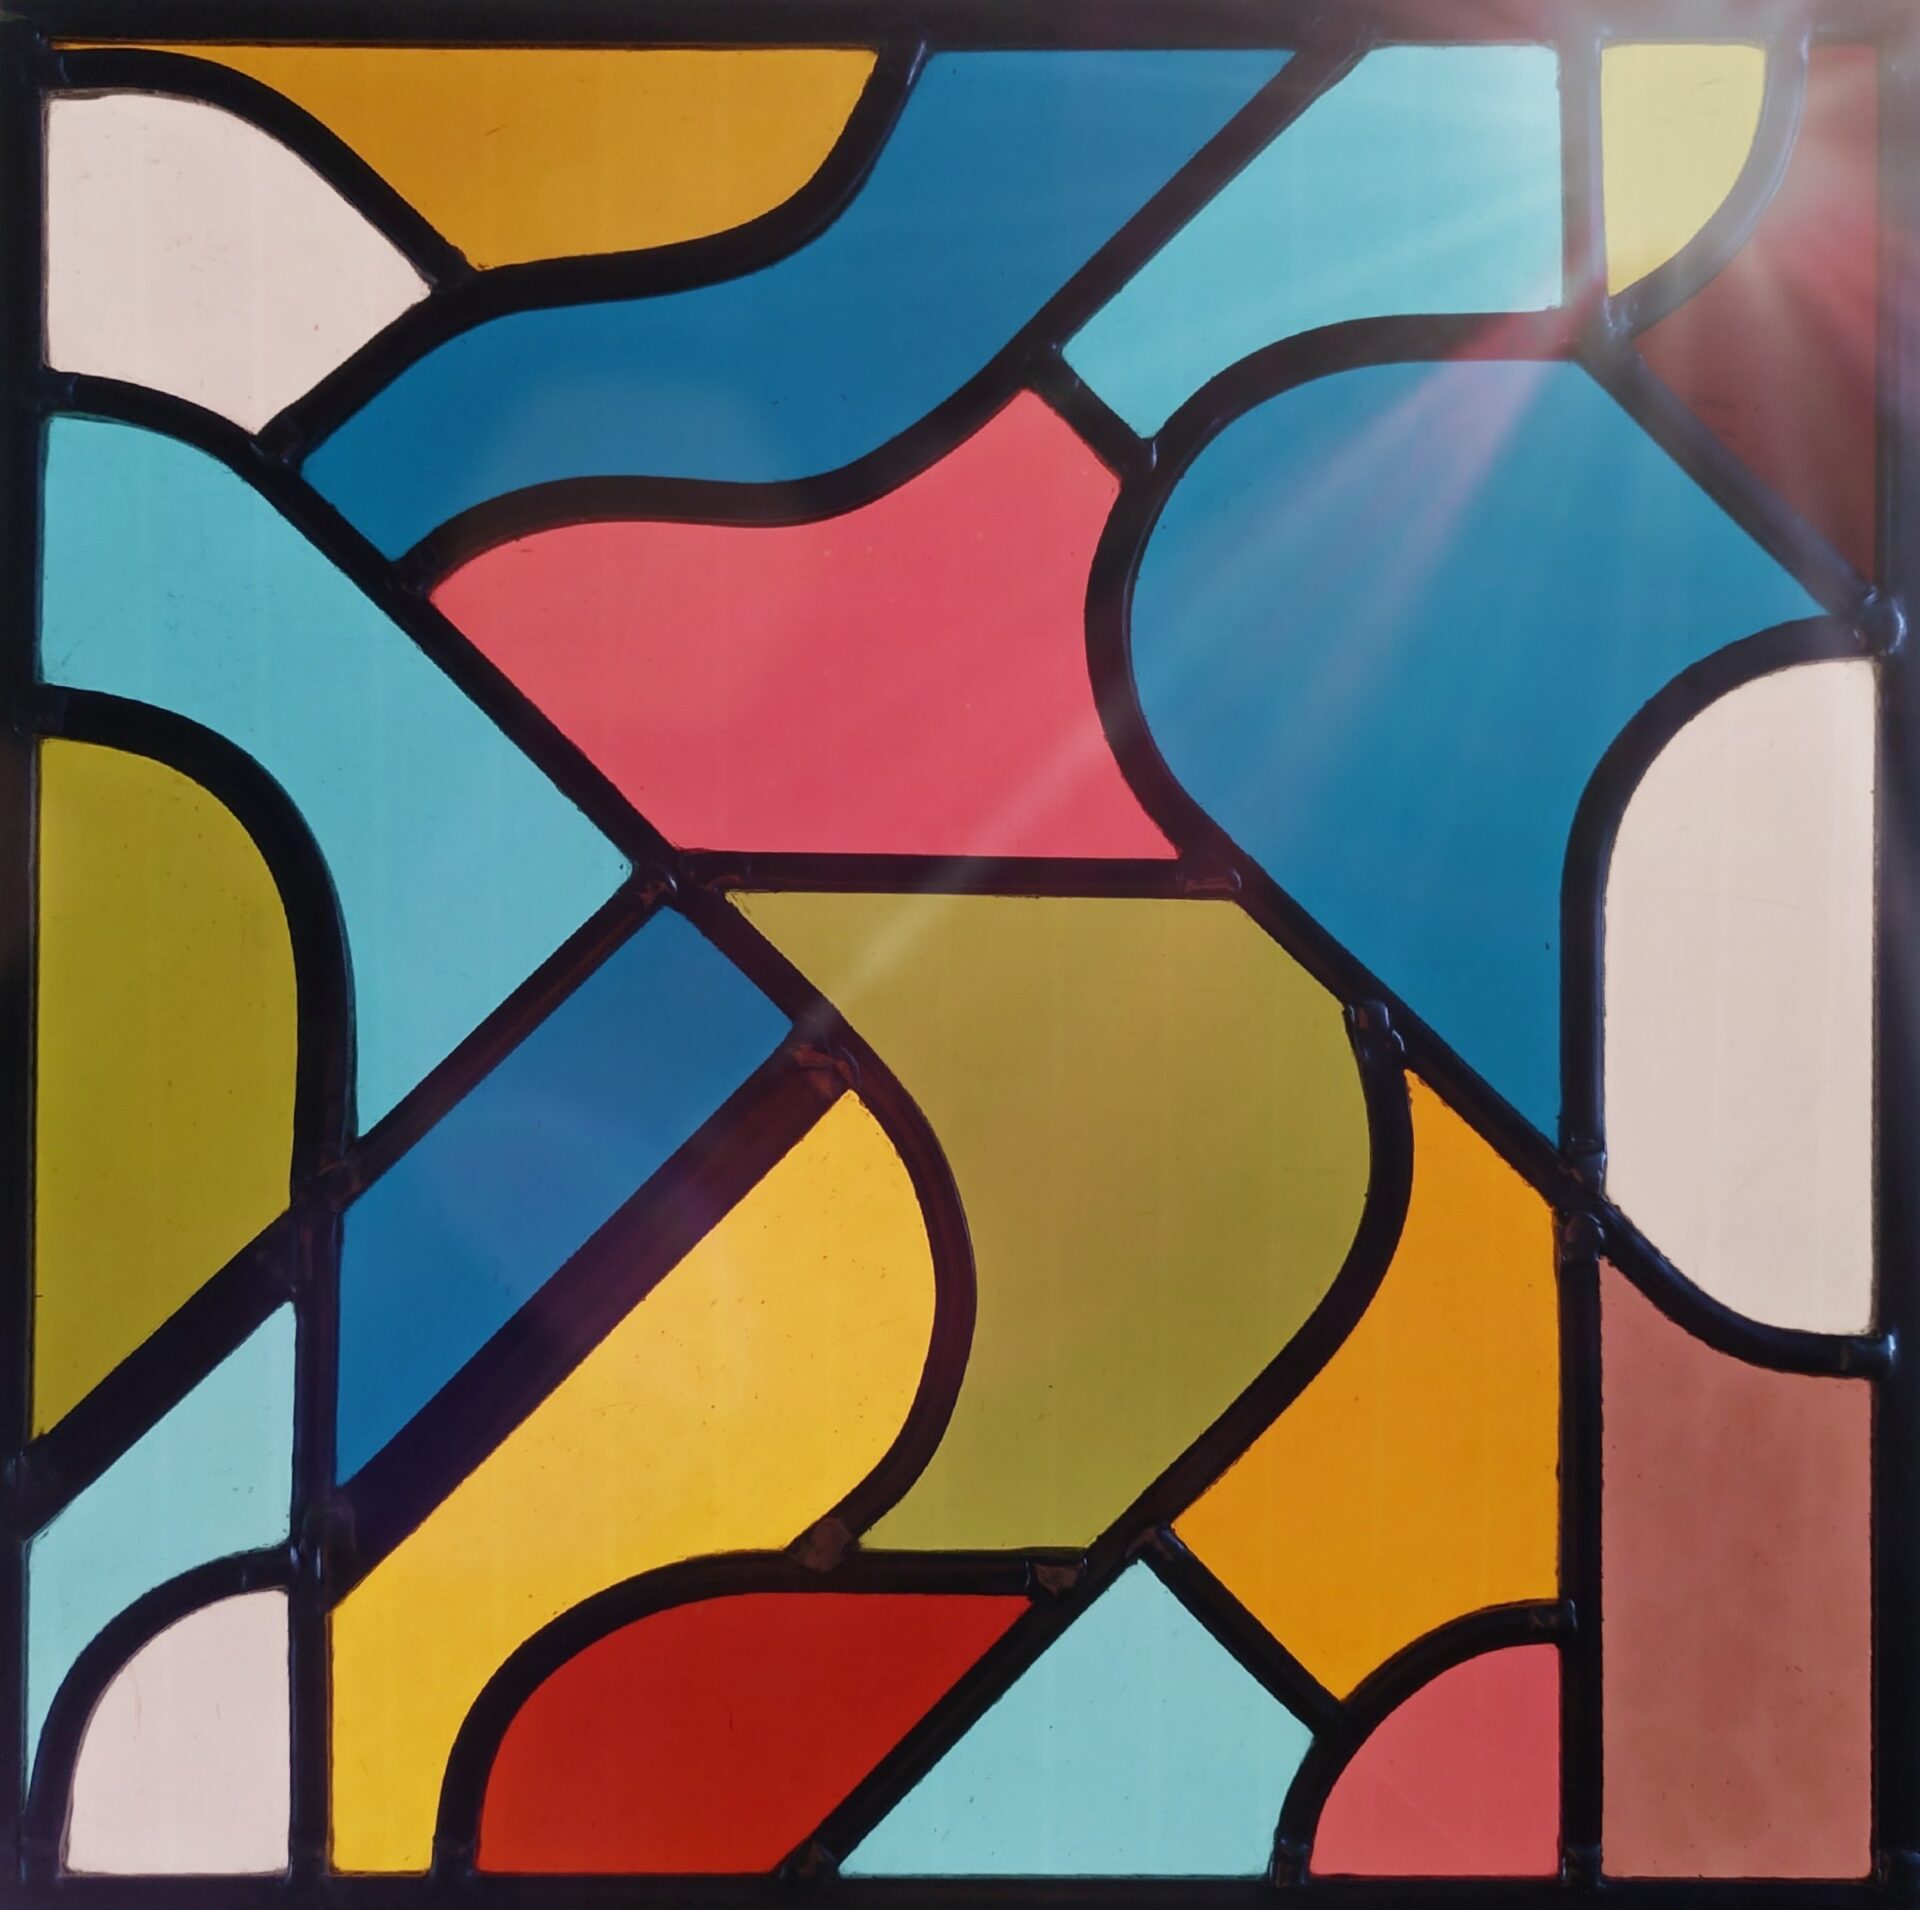 Glasraamdesign contemporary stained glass Isabelle Decallonne